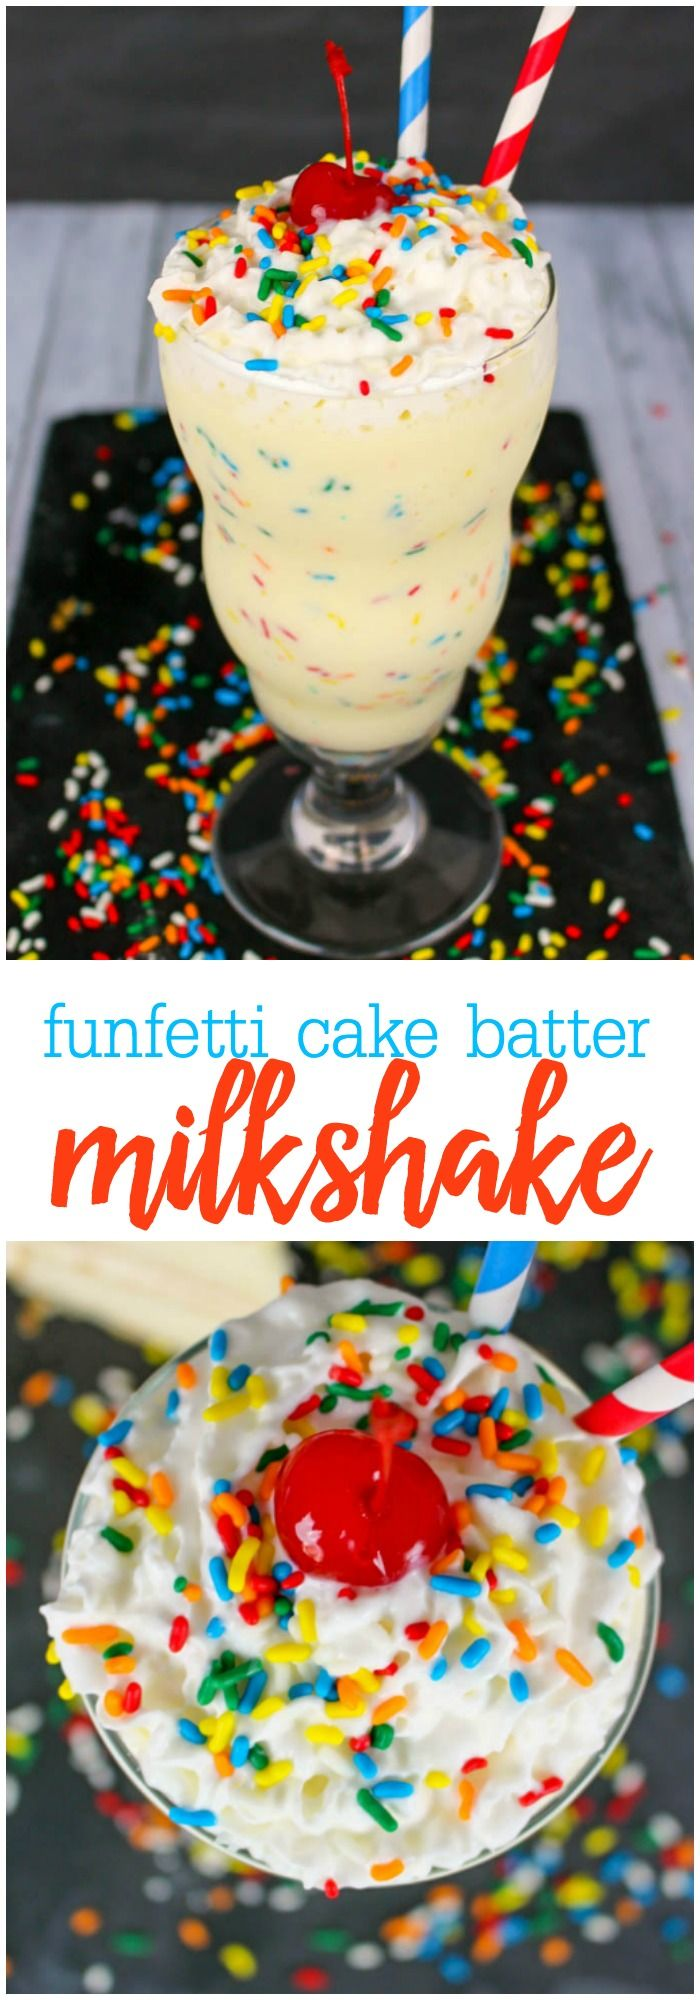 An amazing milkshake that tastes just like it came from the soda shop! This awesome Funfetti Cake Batter Milkshake is super easy to make, and is perfect for enjoying on a hot summer day!